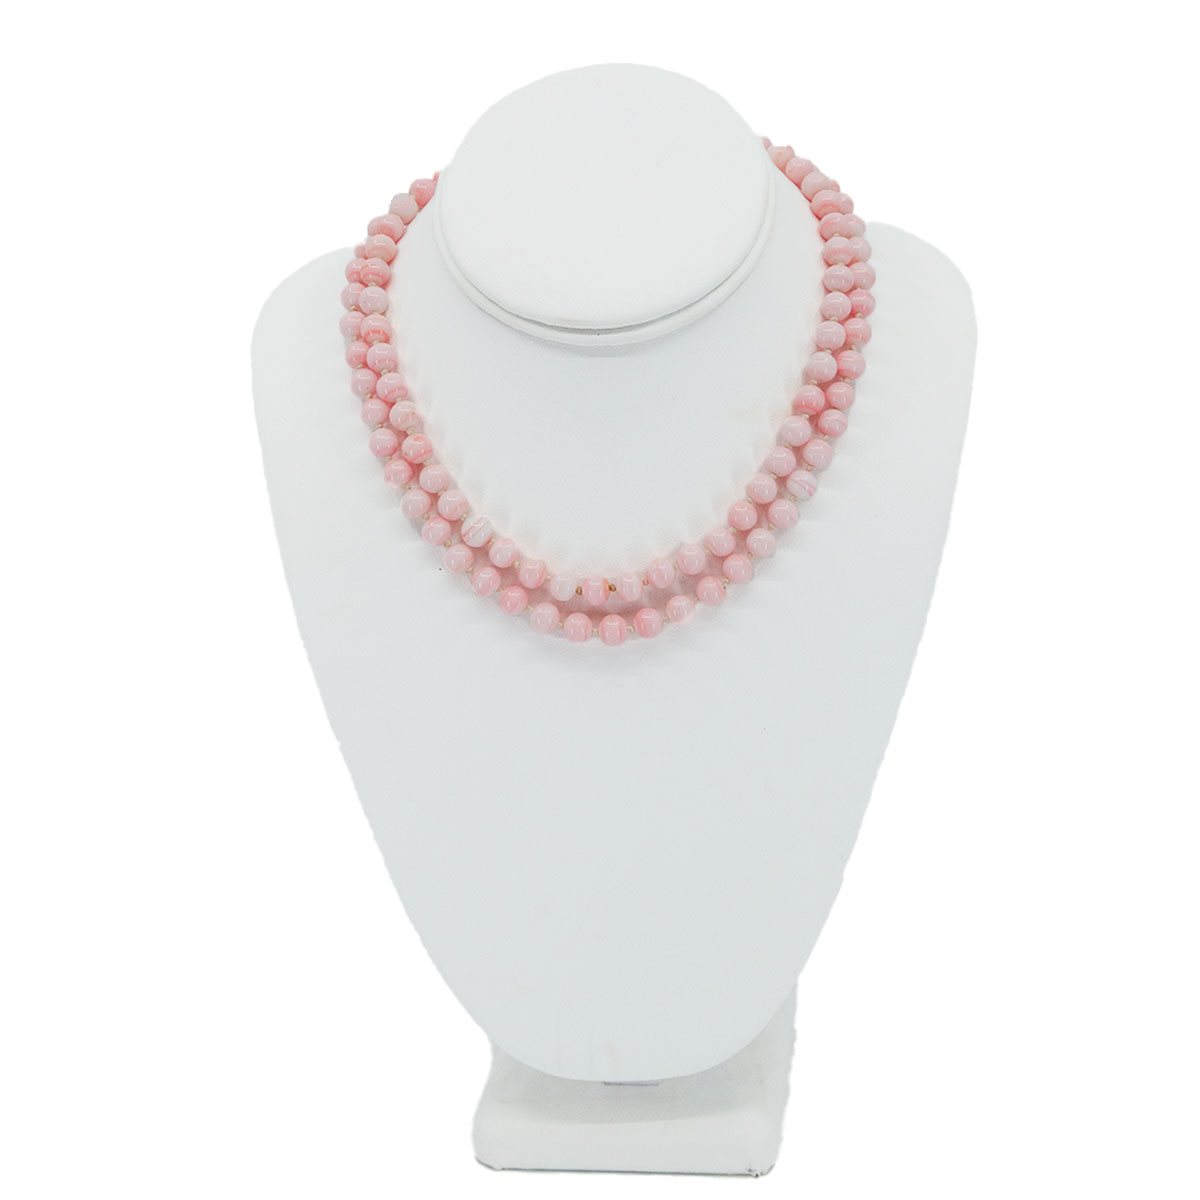 pink glass bead necklace, marbled beads